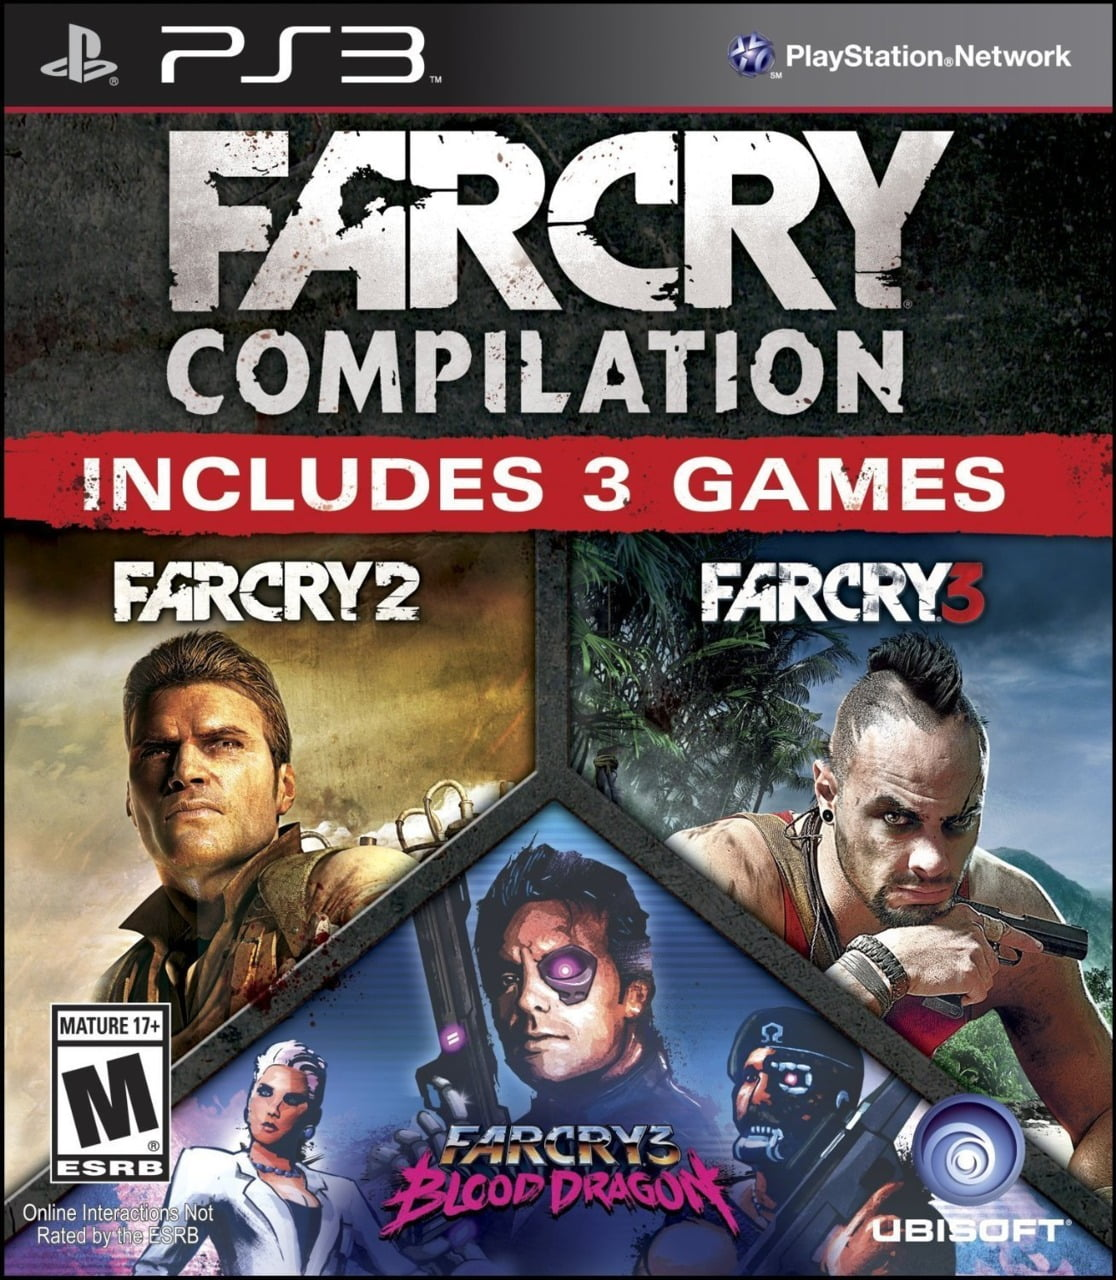 Far Cry: Compilation